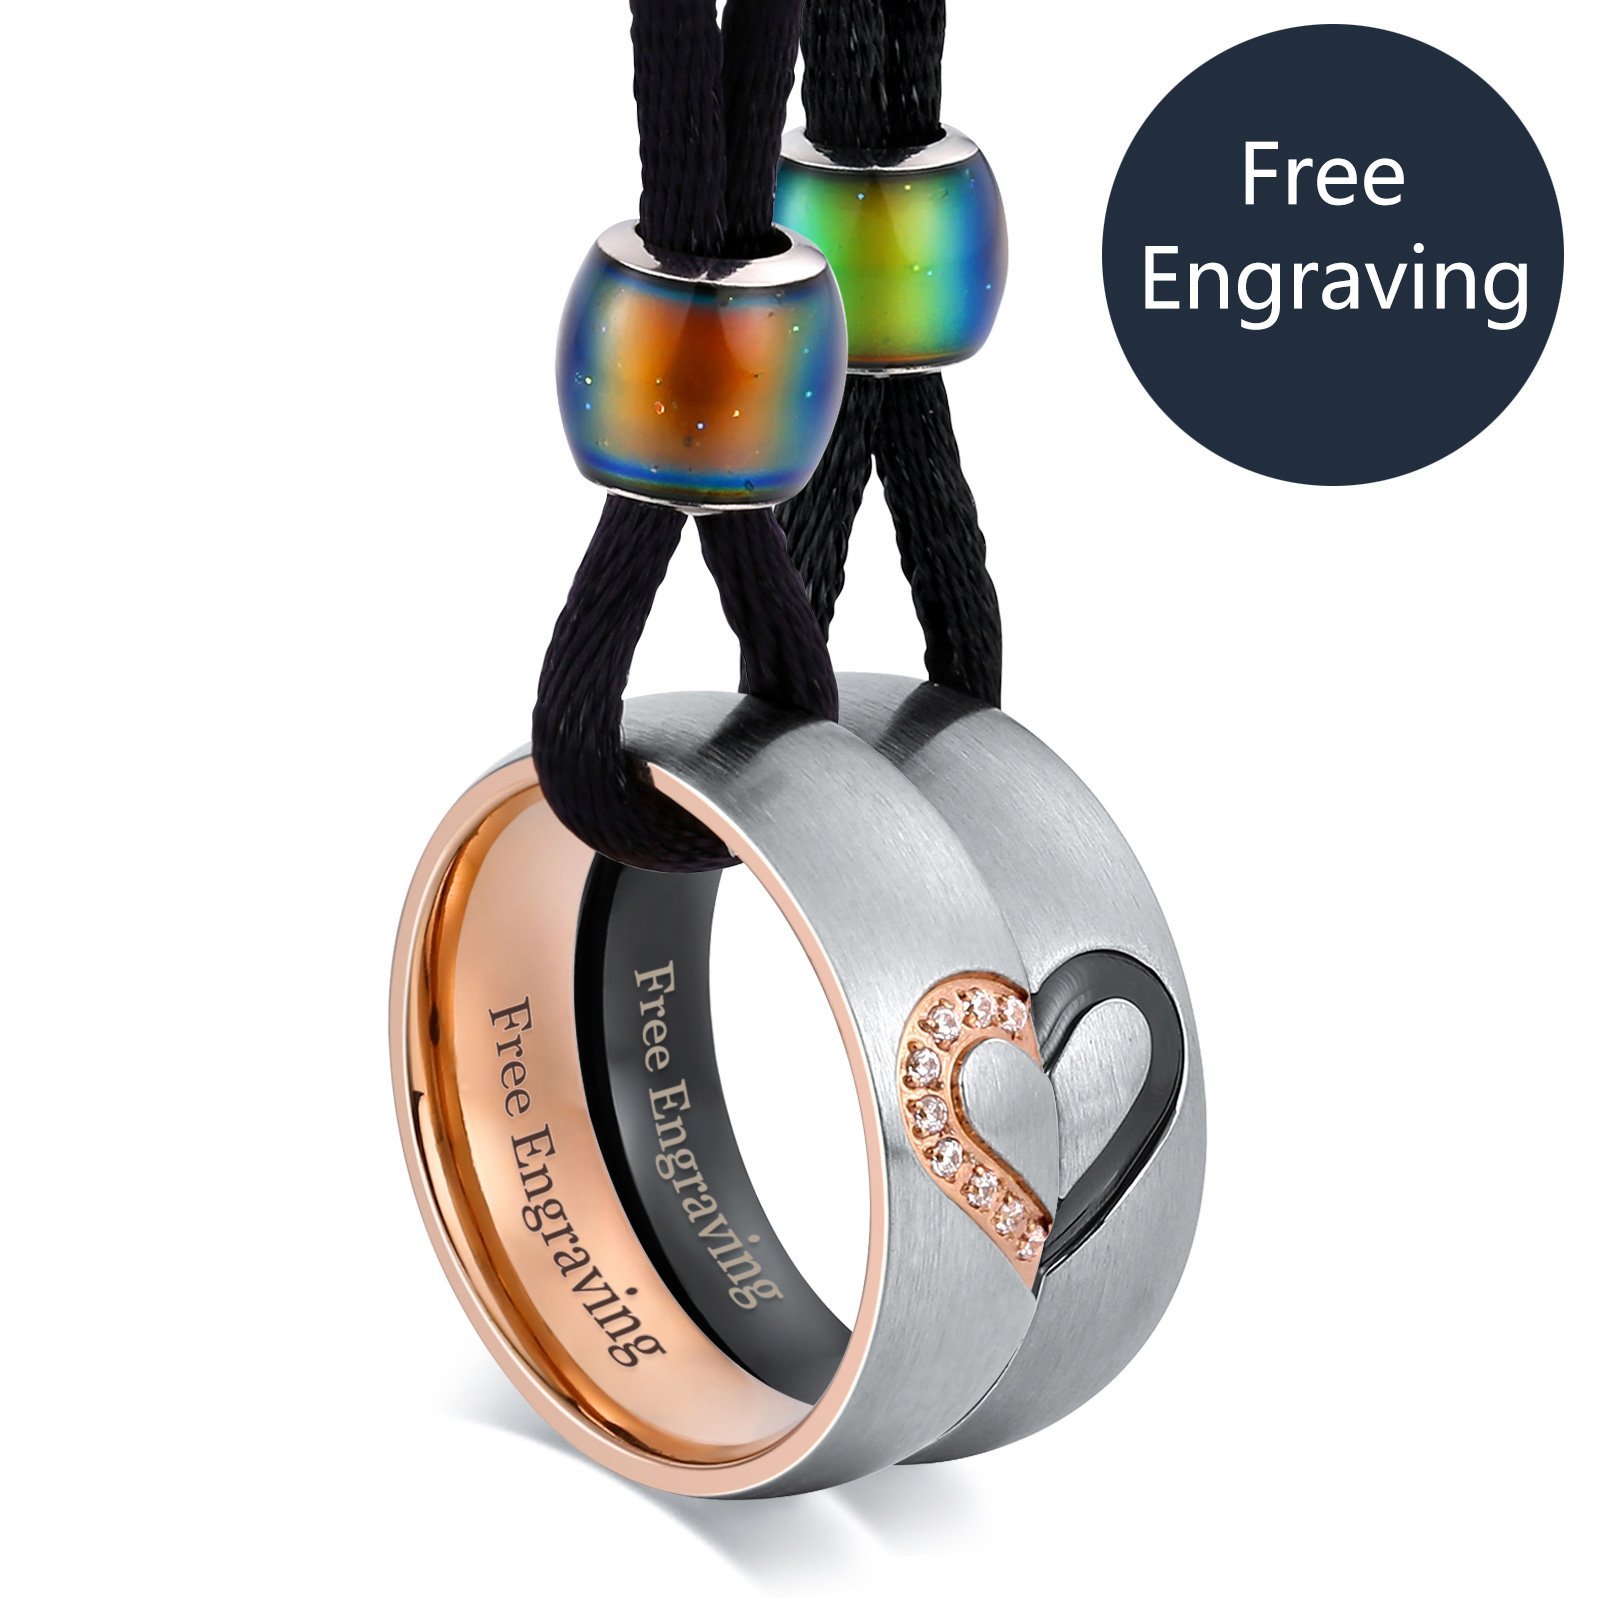 Aeici Jewelry Free Engraving Customized Necklace for Couple Stainless Steel Heart Matching Pendant Set CZ